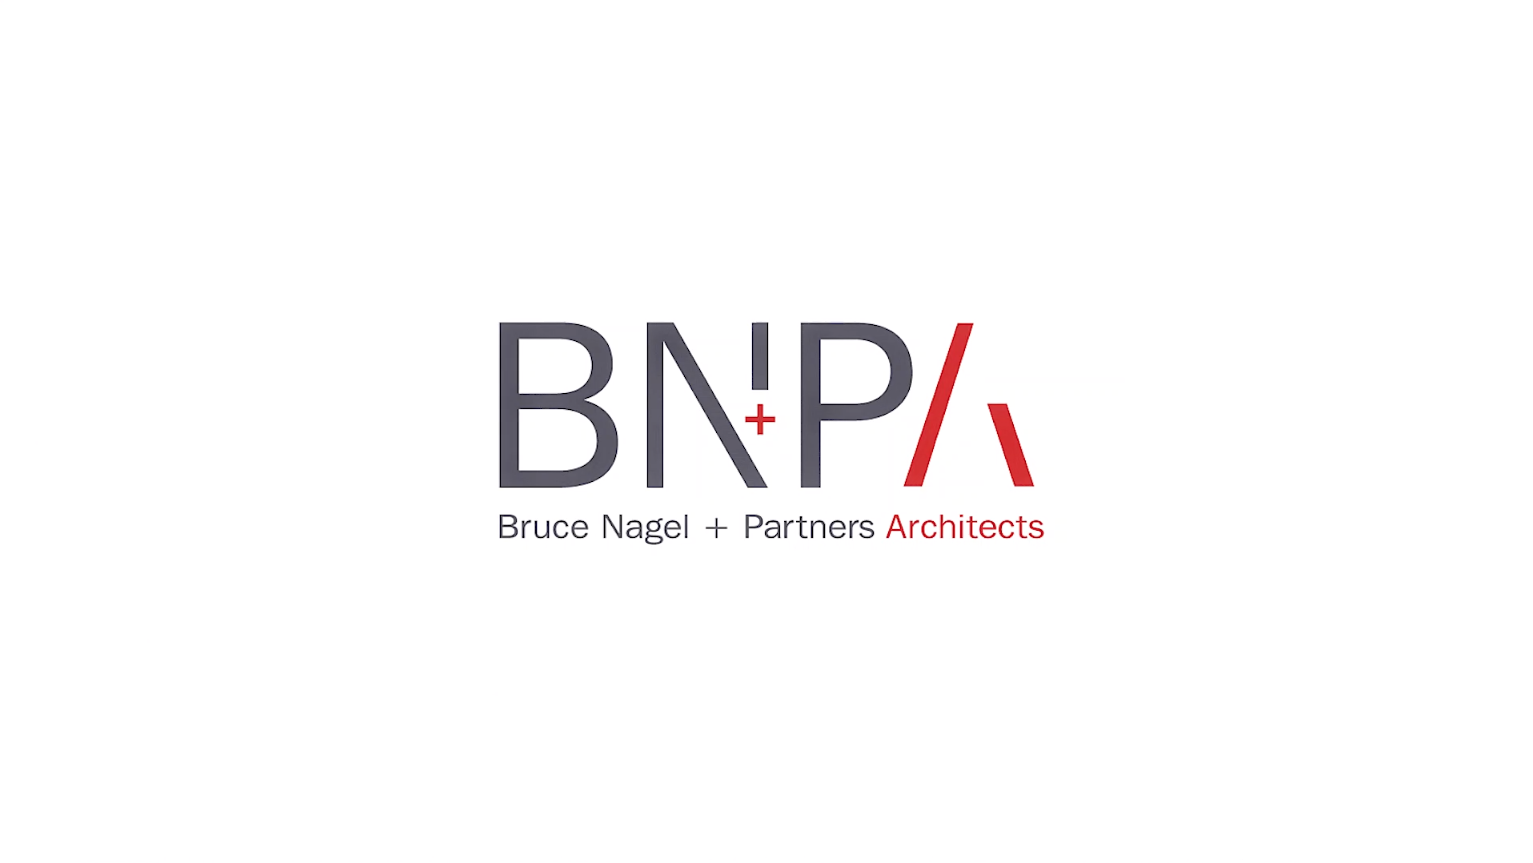 Bruce Nagel and Partners Architects, Dead on Design